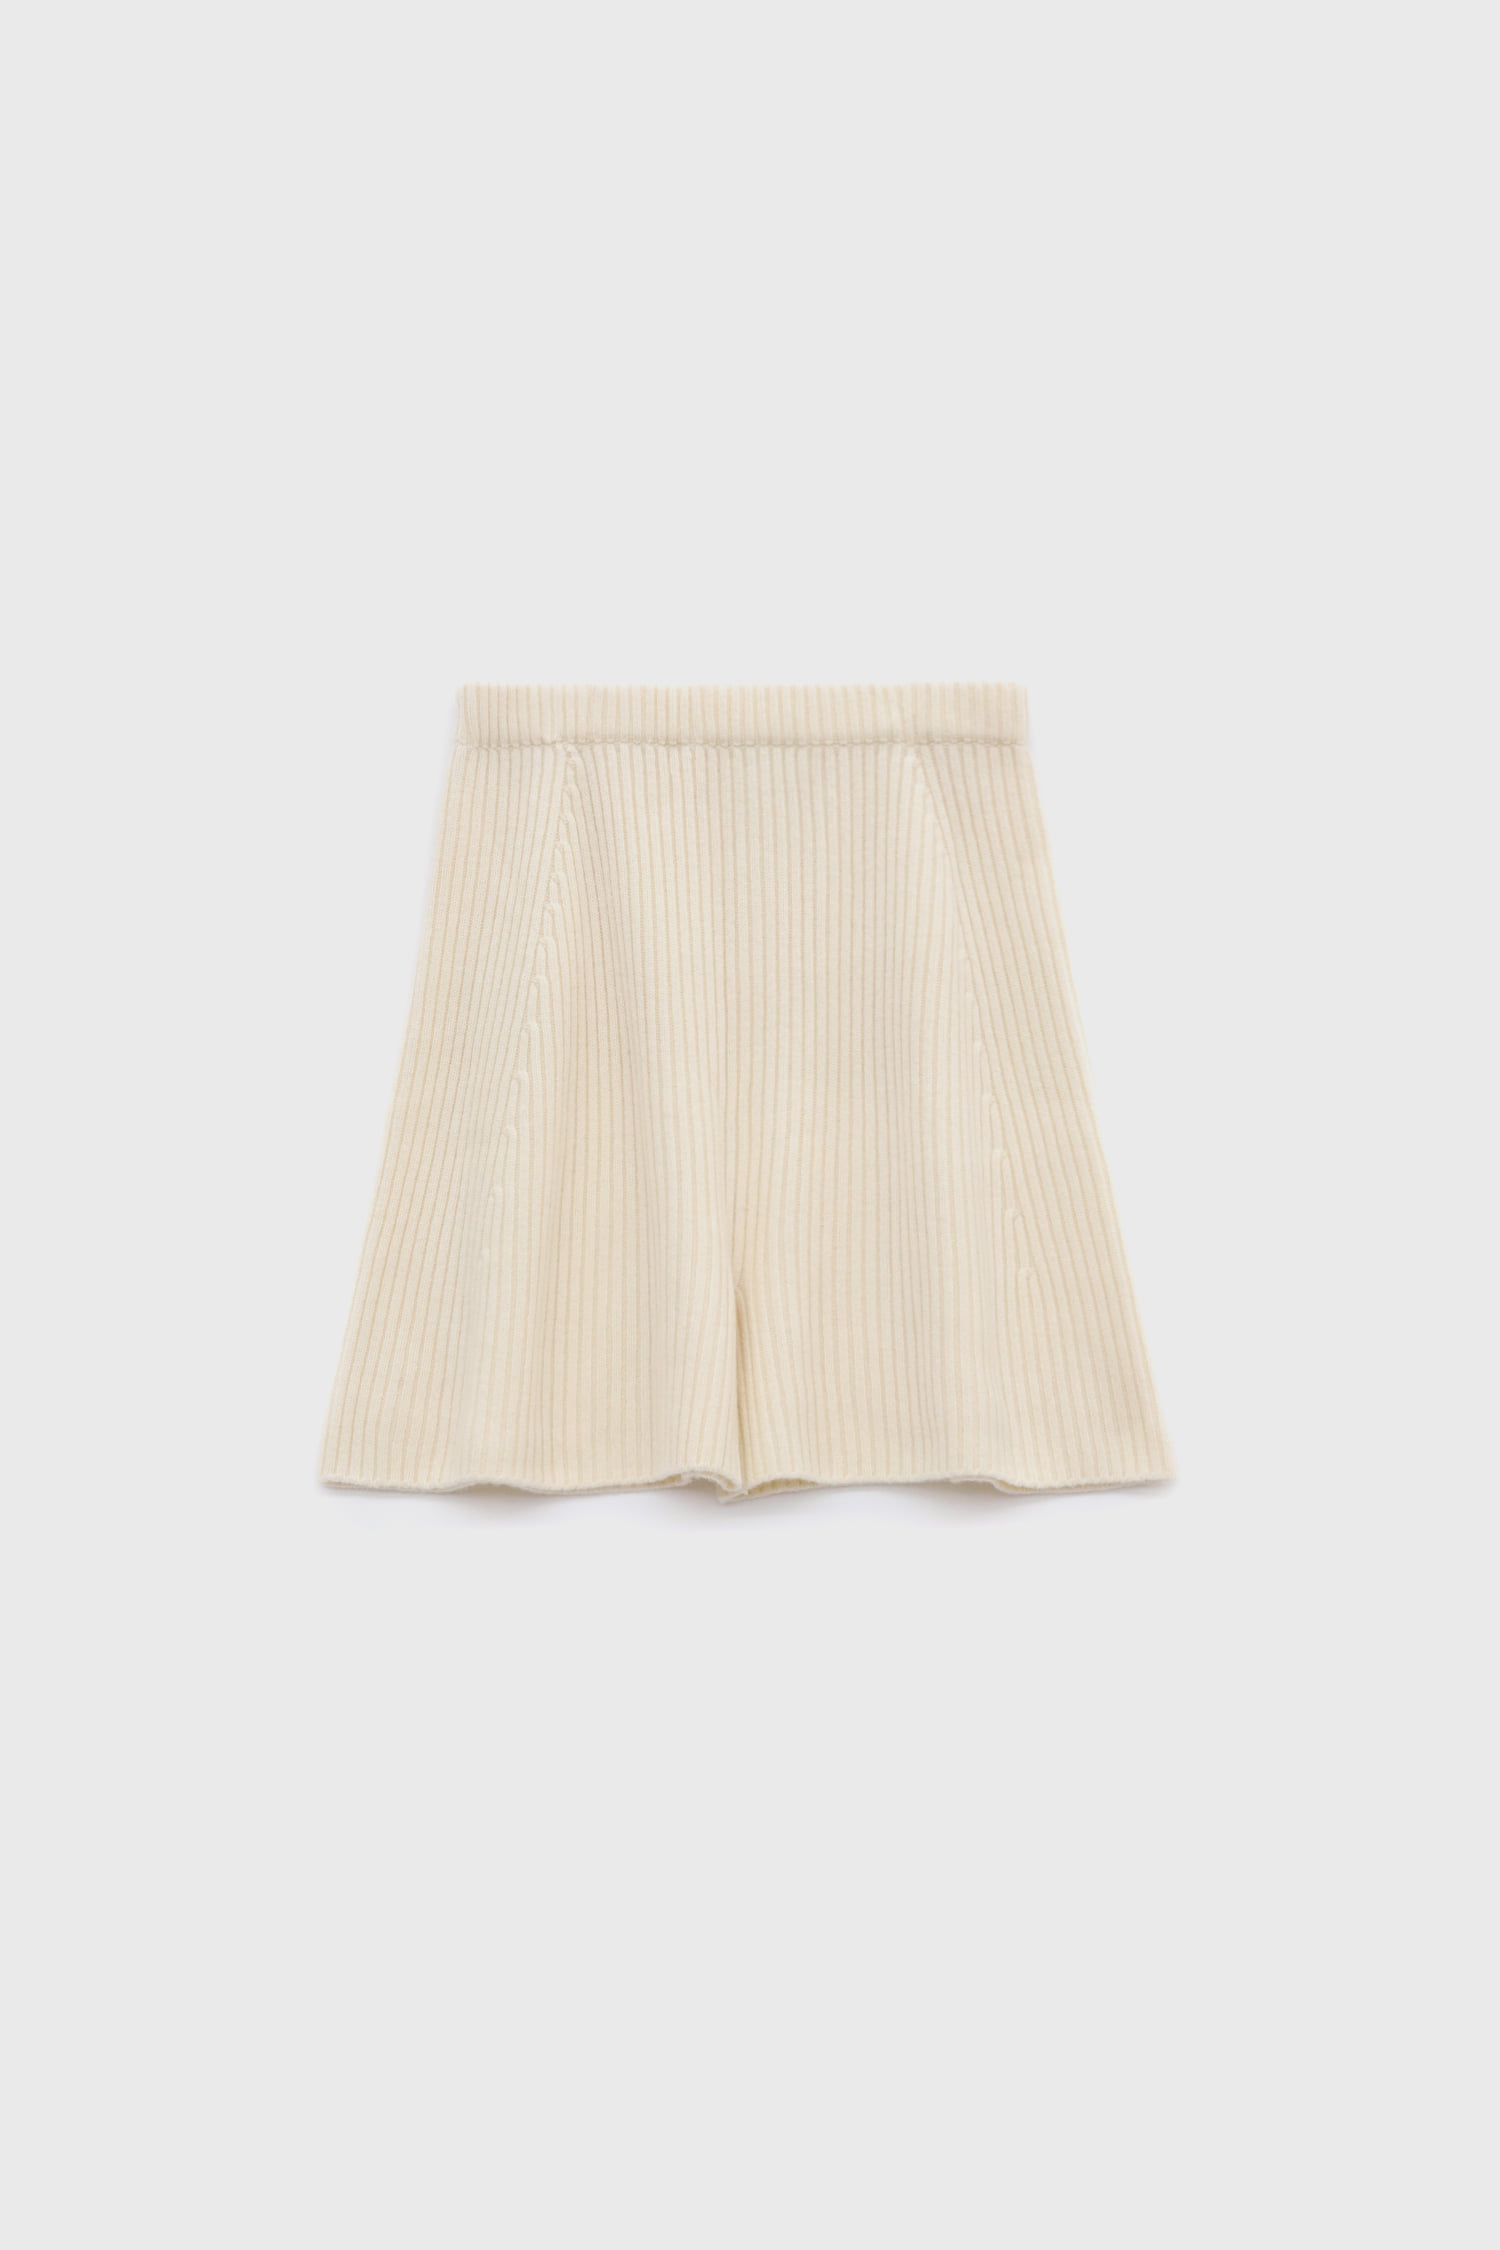 Knit short pants